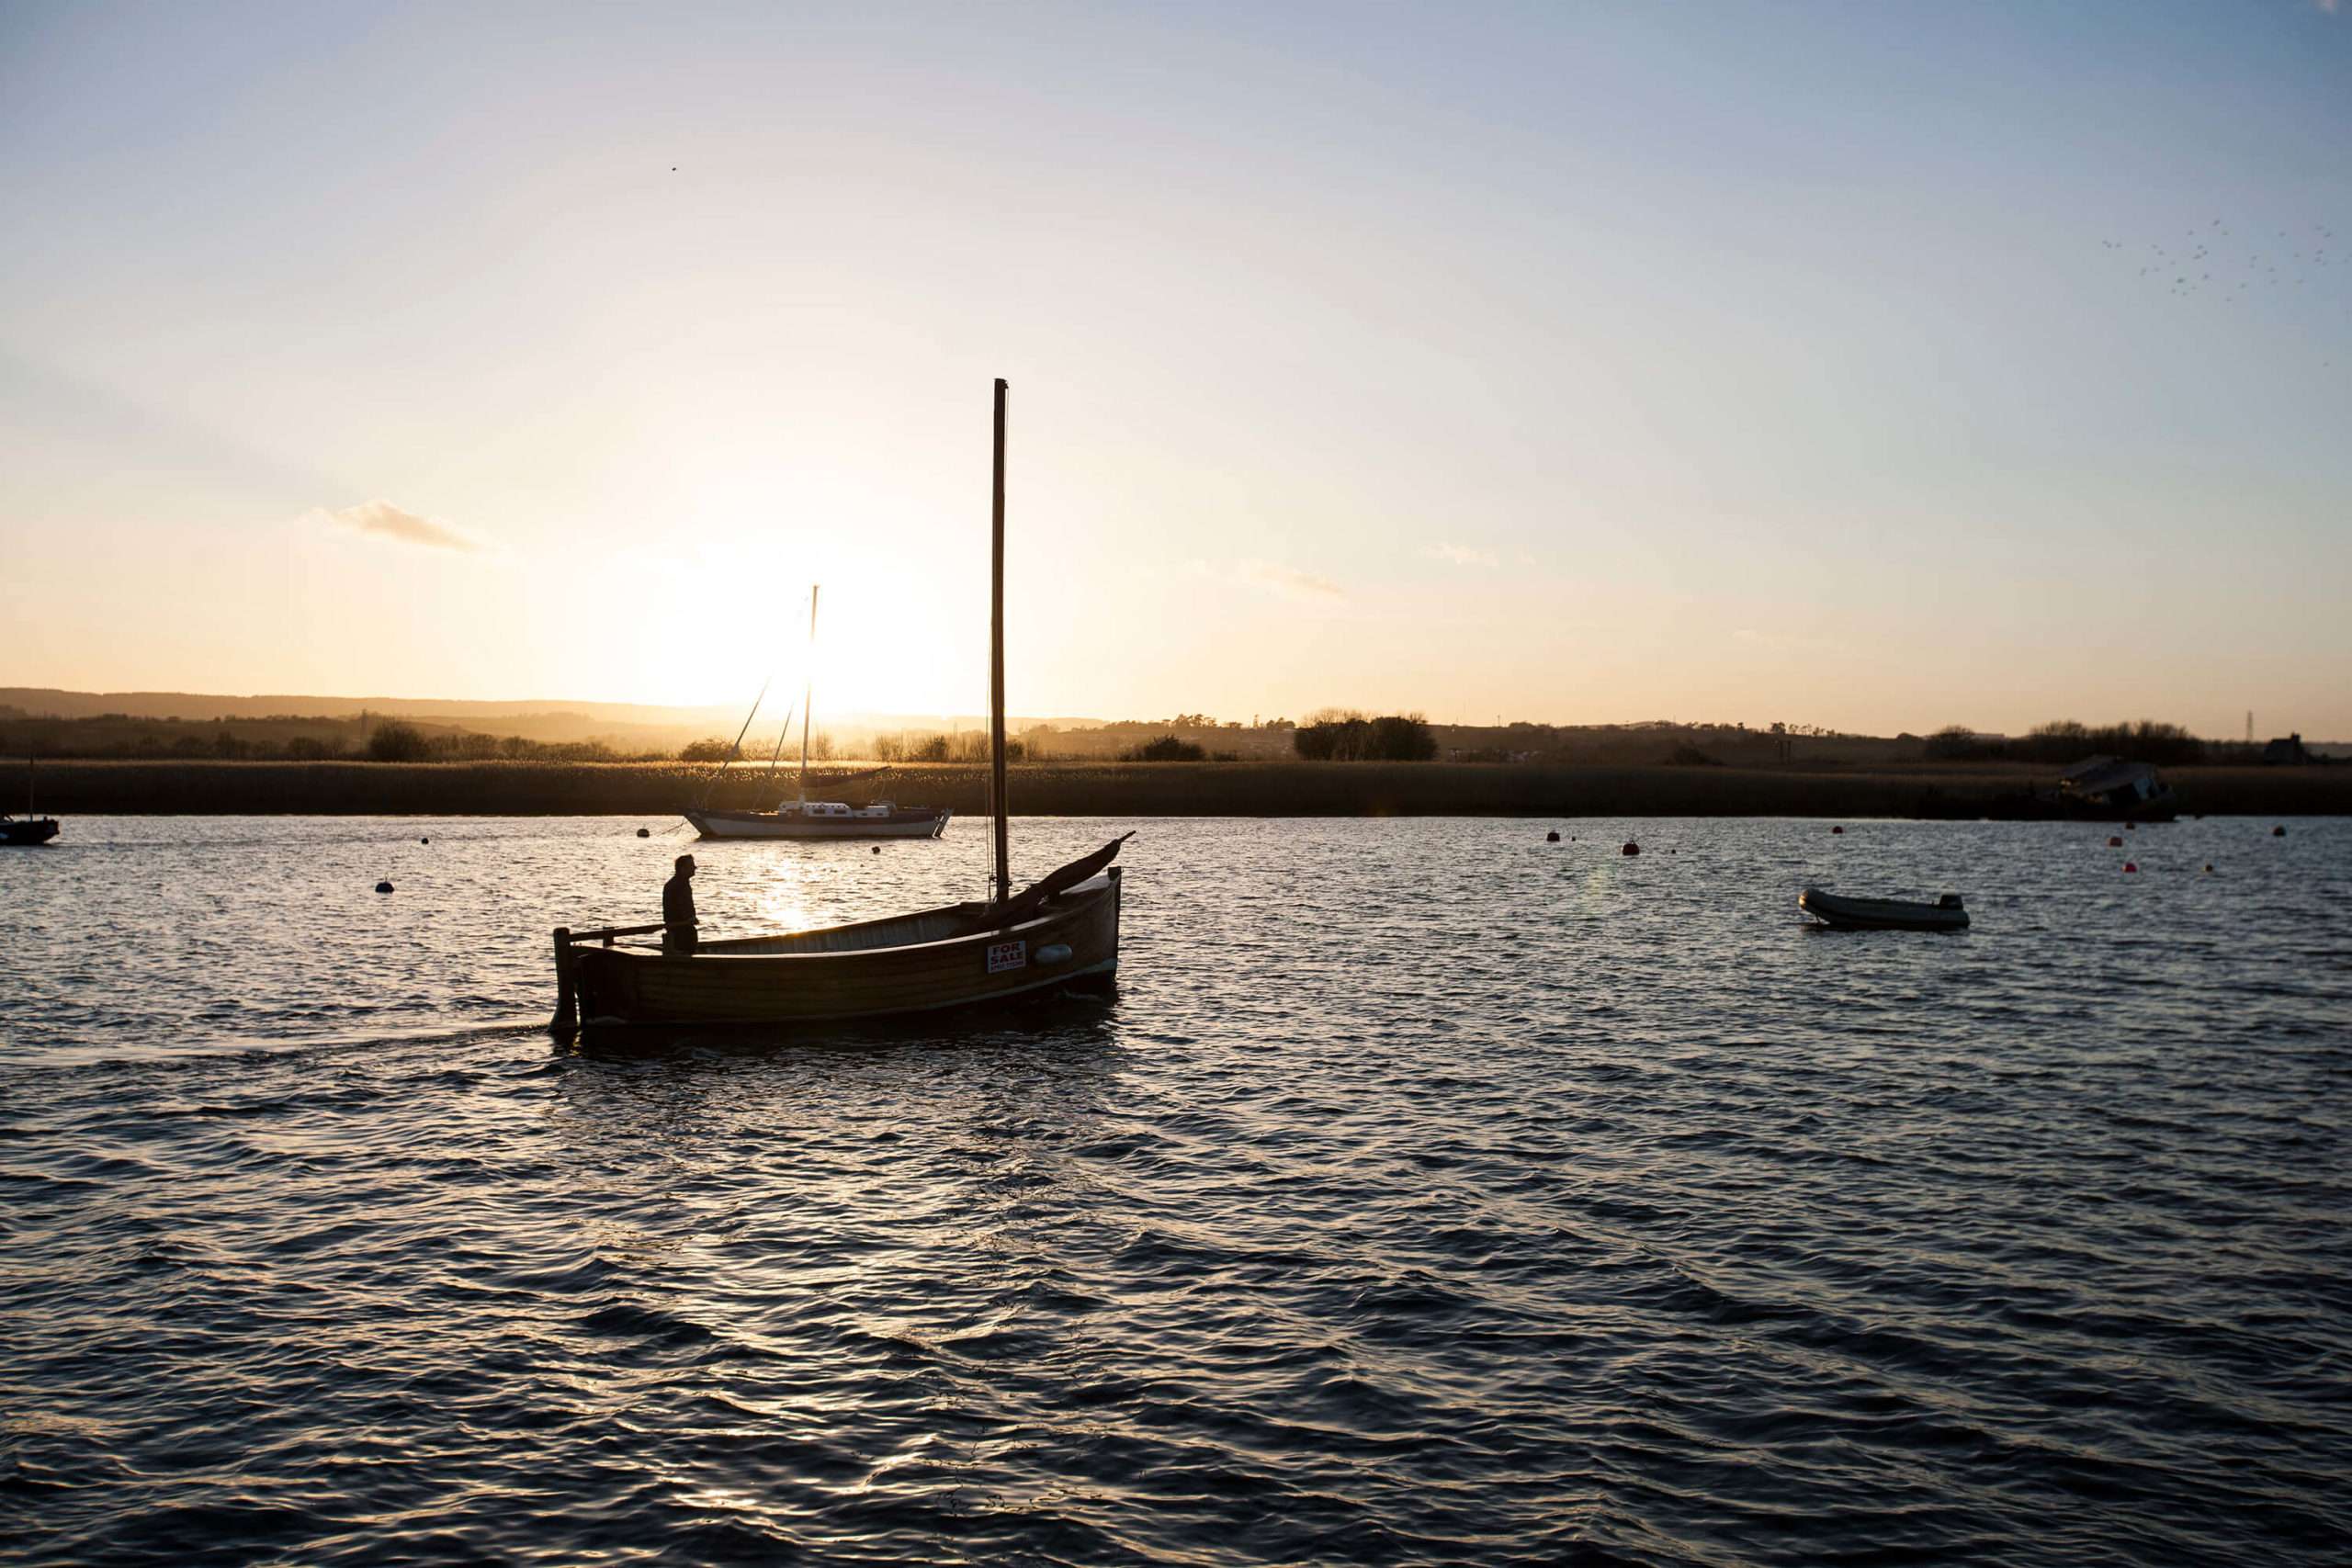 Fisherman returns home on the River Exe, Exeter